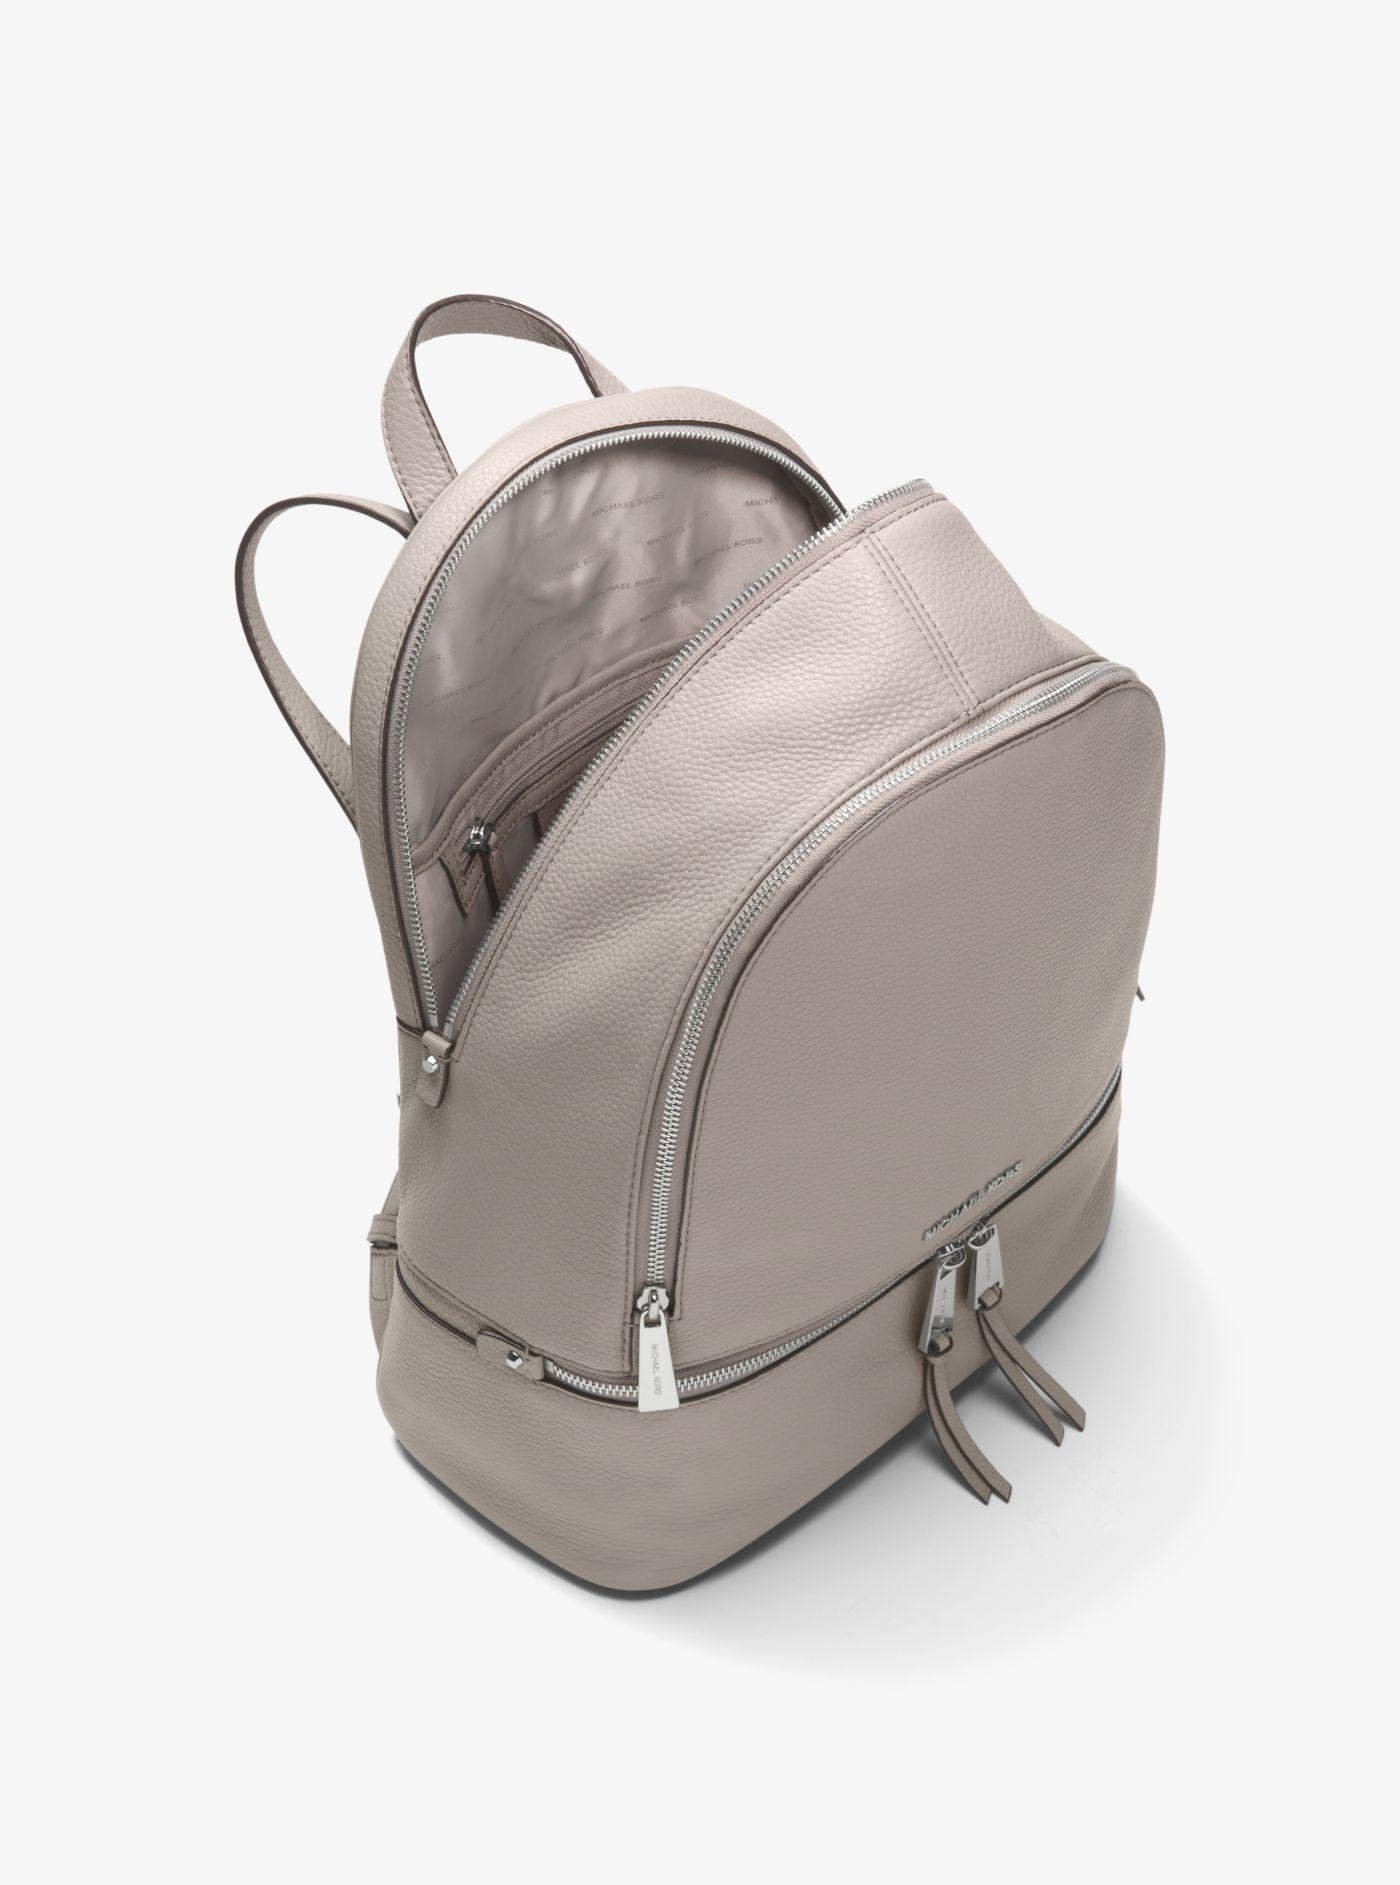 16a7884b2495 Michael Kors Gray Leather Backpack – Patmo Technologies Limited